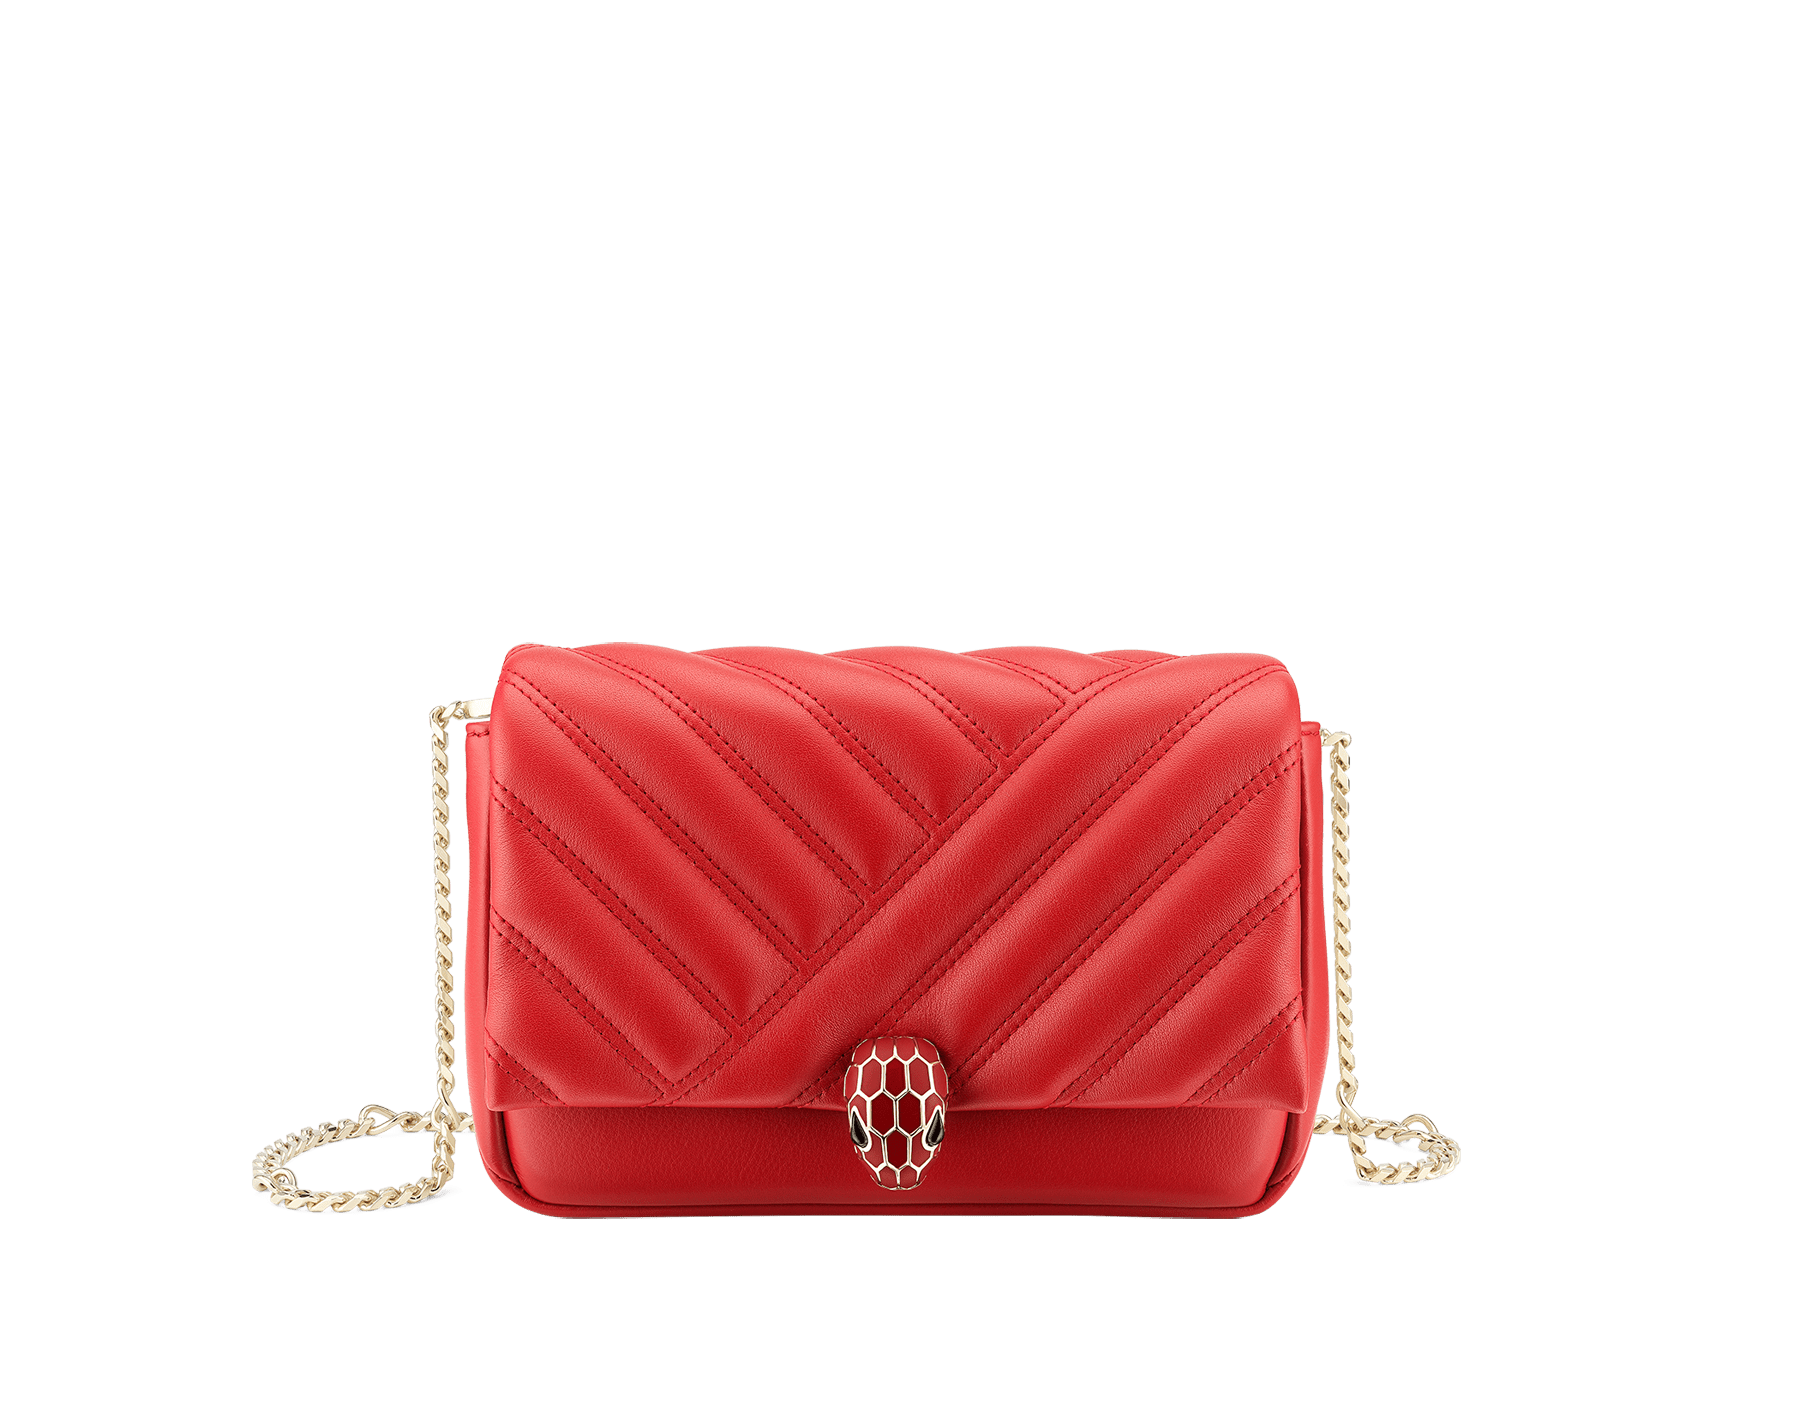 Serpenti Cabochon micro bag in soft matelassé carmine jasper calf leather, with a graphic motif. Brass light gold plated tempting snakehead closure in carmine jasper enamel and black onyx eyes. 288756 image 1